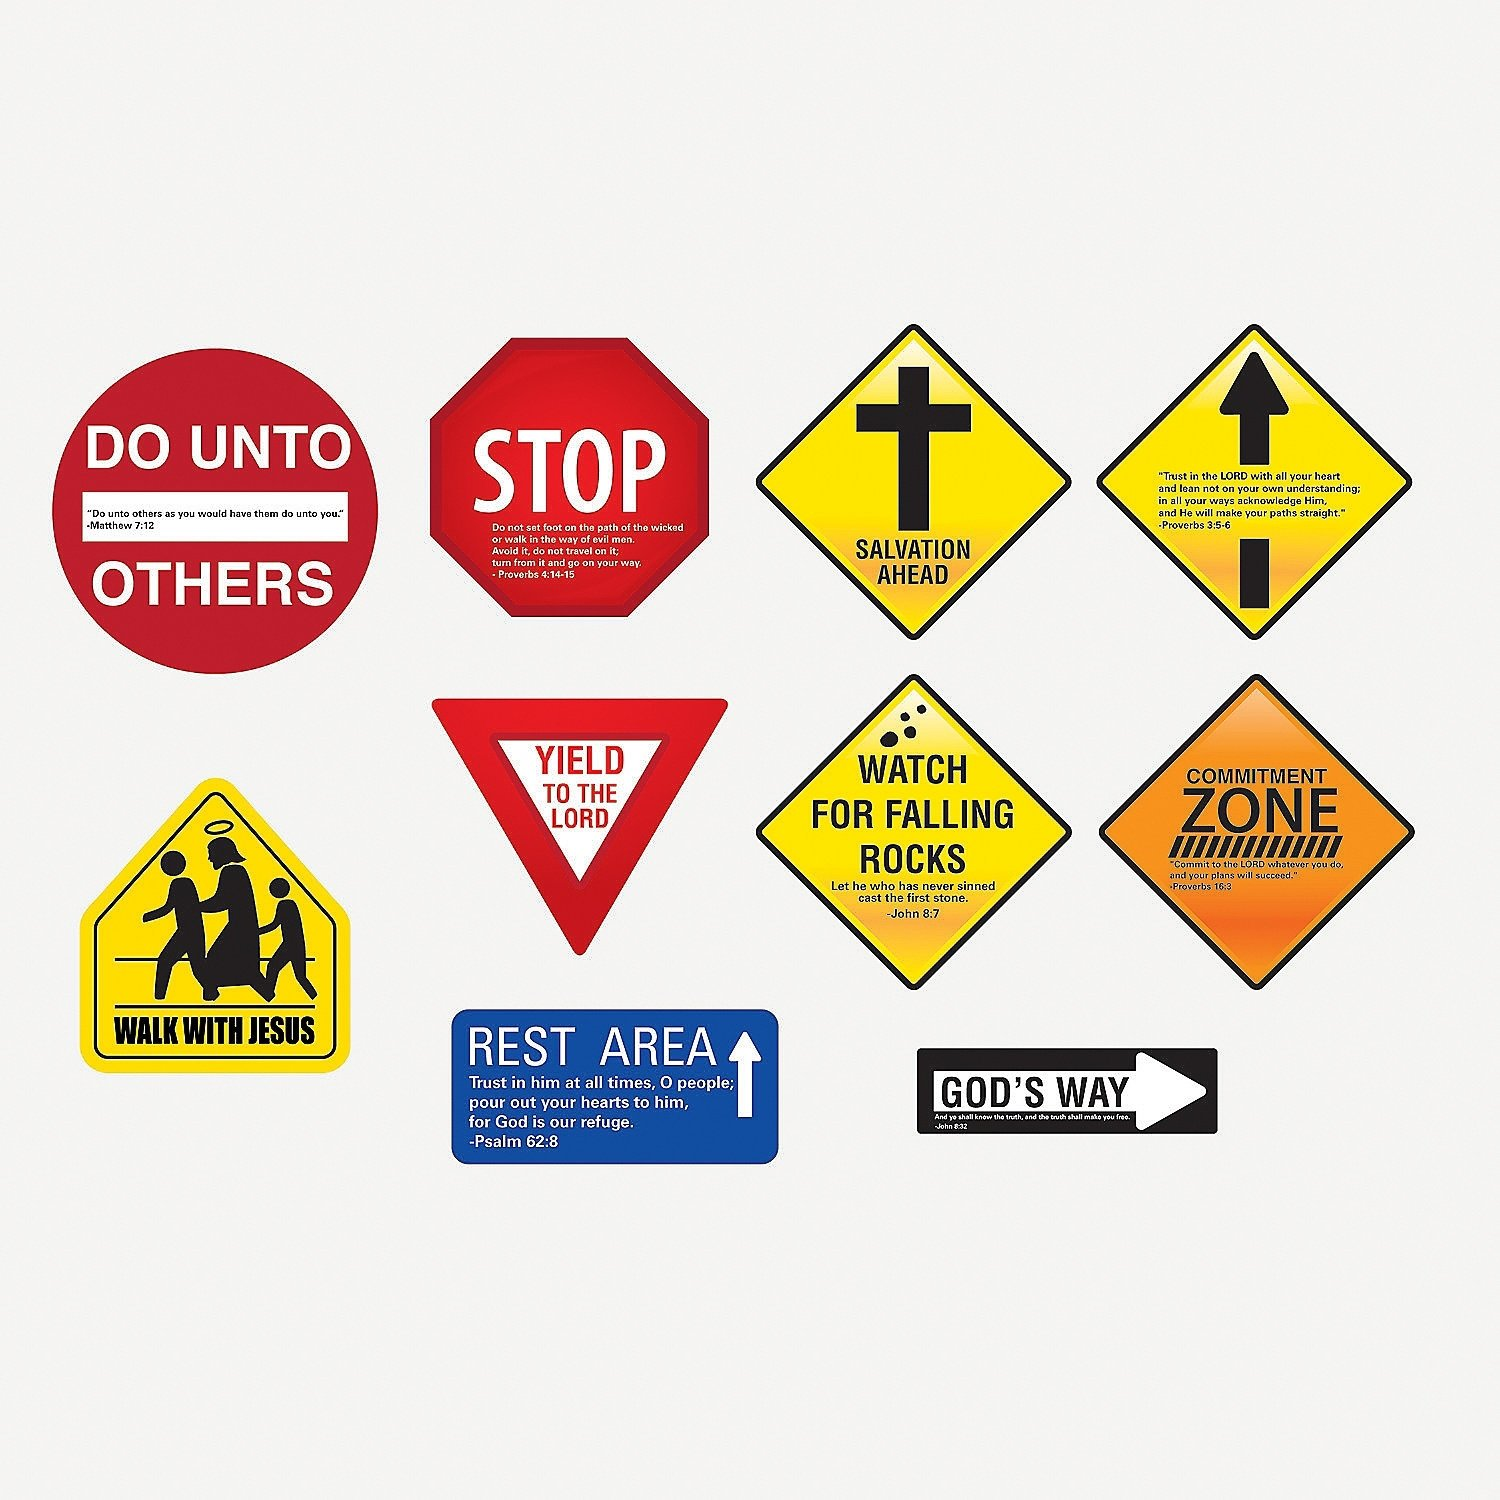 10 Fabulous Vacation Bible School Themes And Ideas inspirational road sign wall decorations inspirational sunday 2020